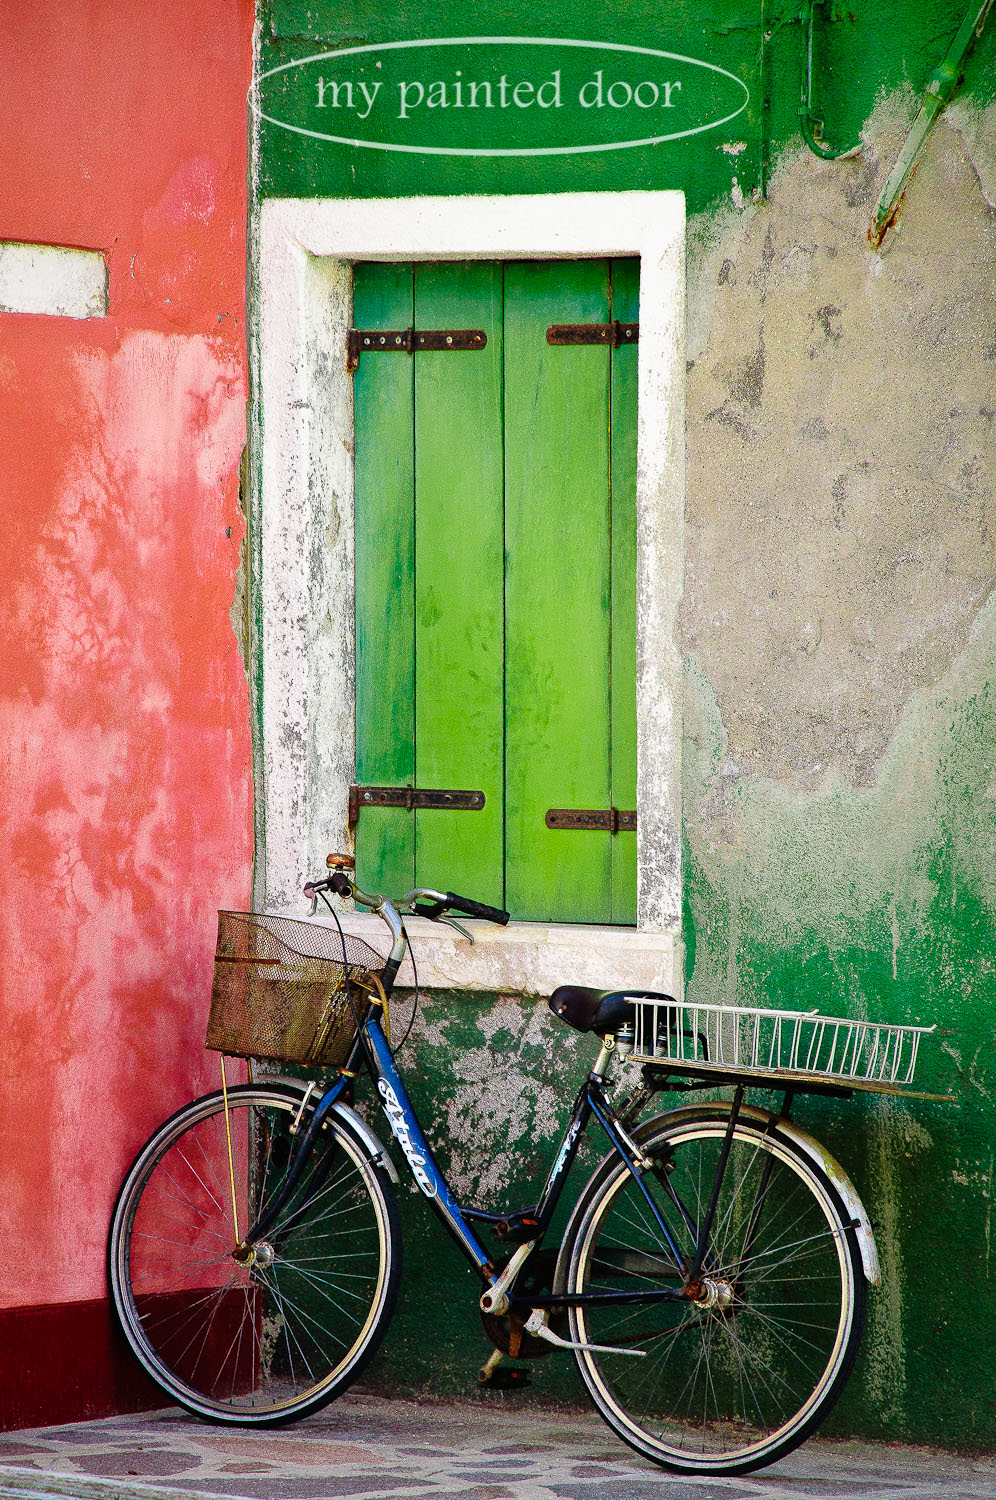 Bike leaning against a textured wall in Burano, Italy.